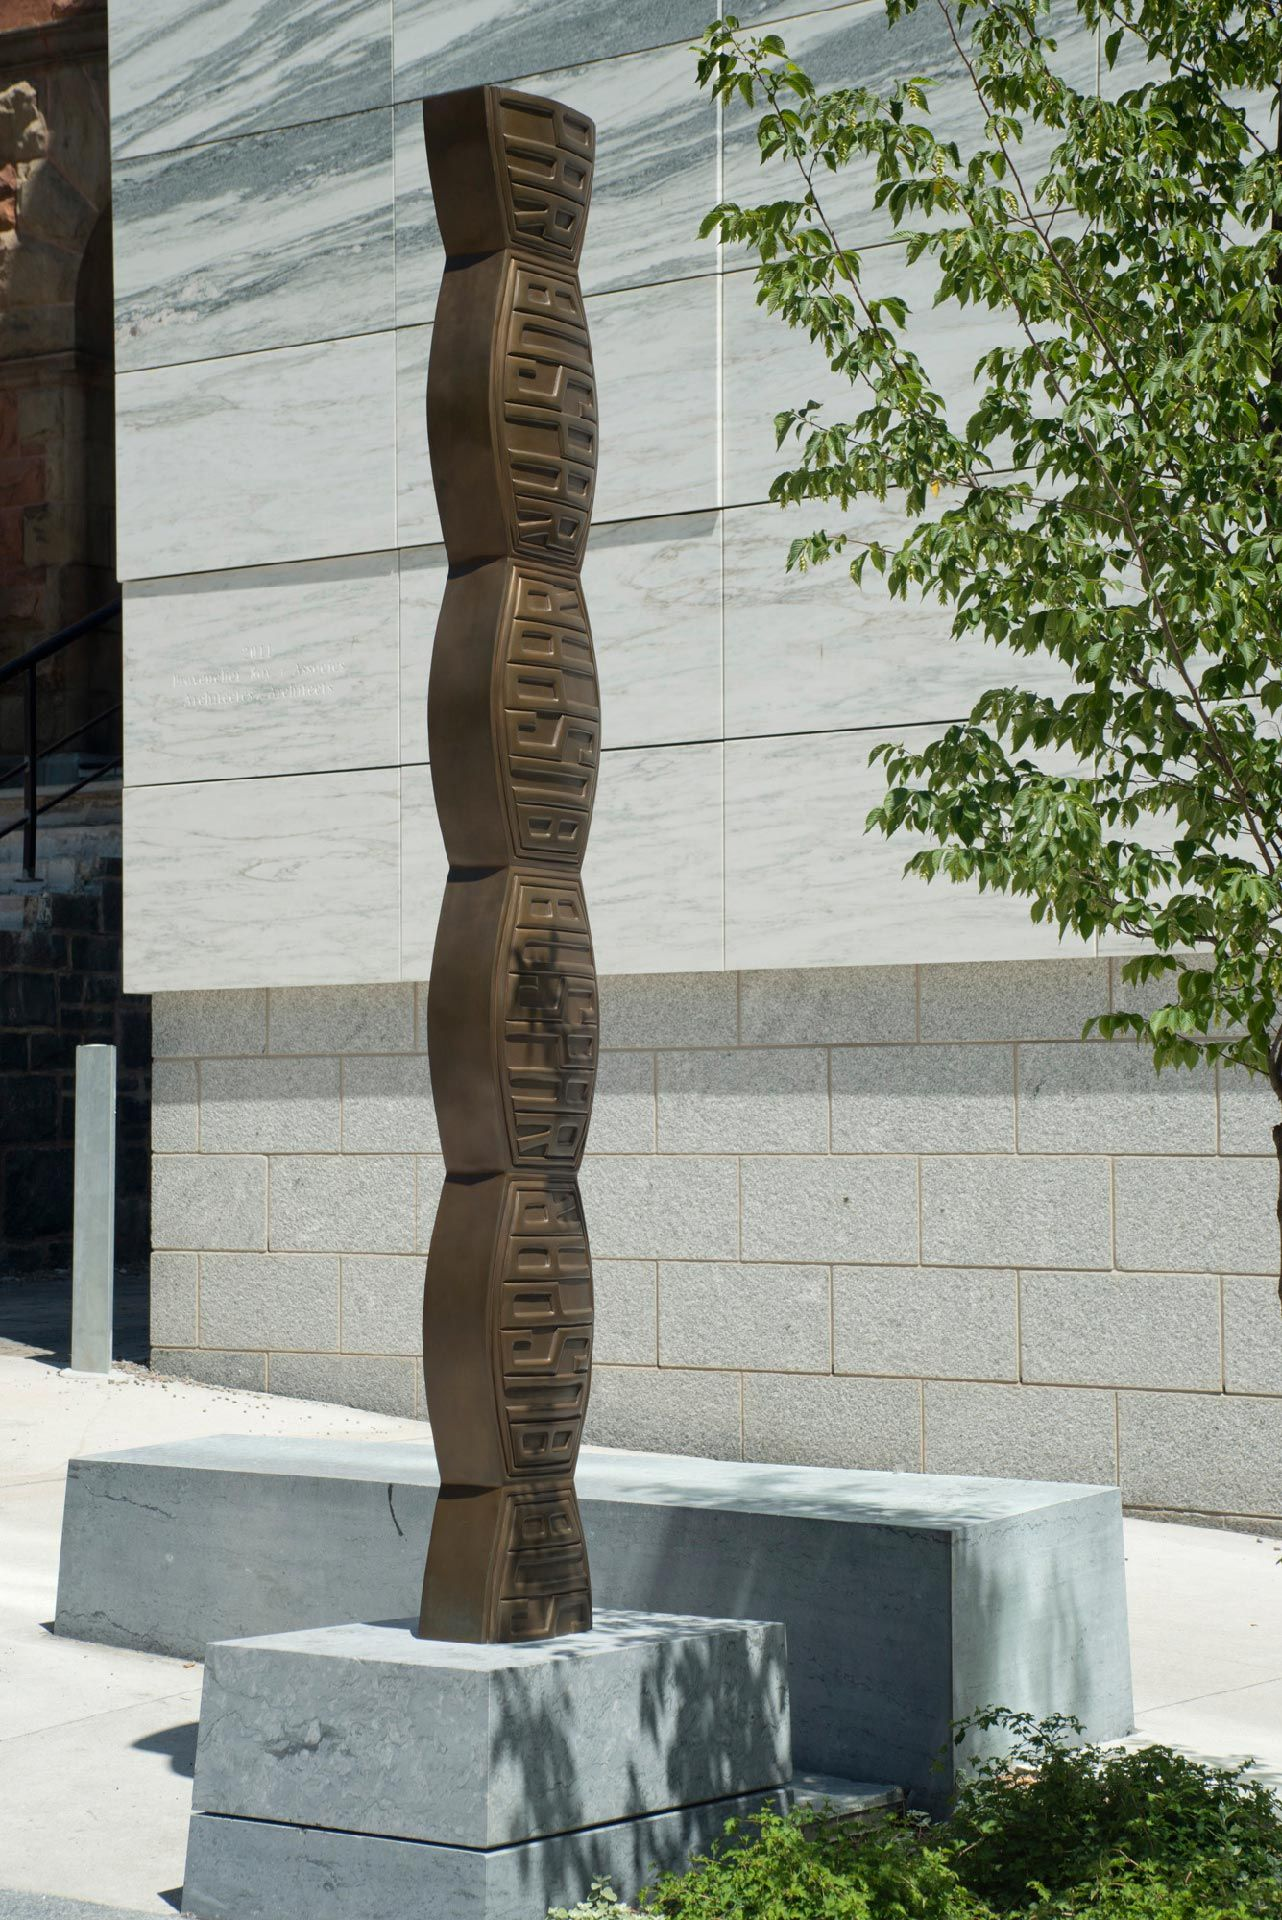 Colleen Wolstenholme, BuSpar Column, 2001, bronze. Inverness Foundry, Quebec. MMFA, gift of Andrew Danyliw